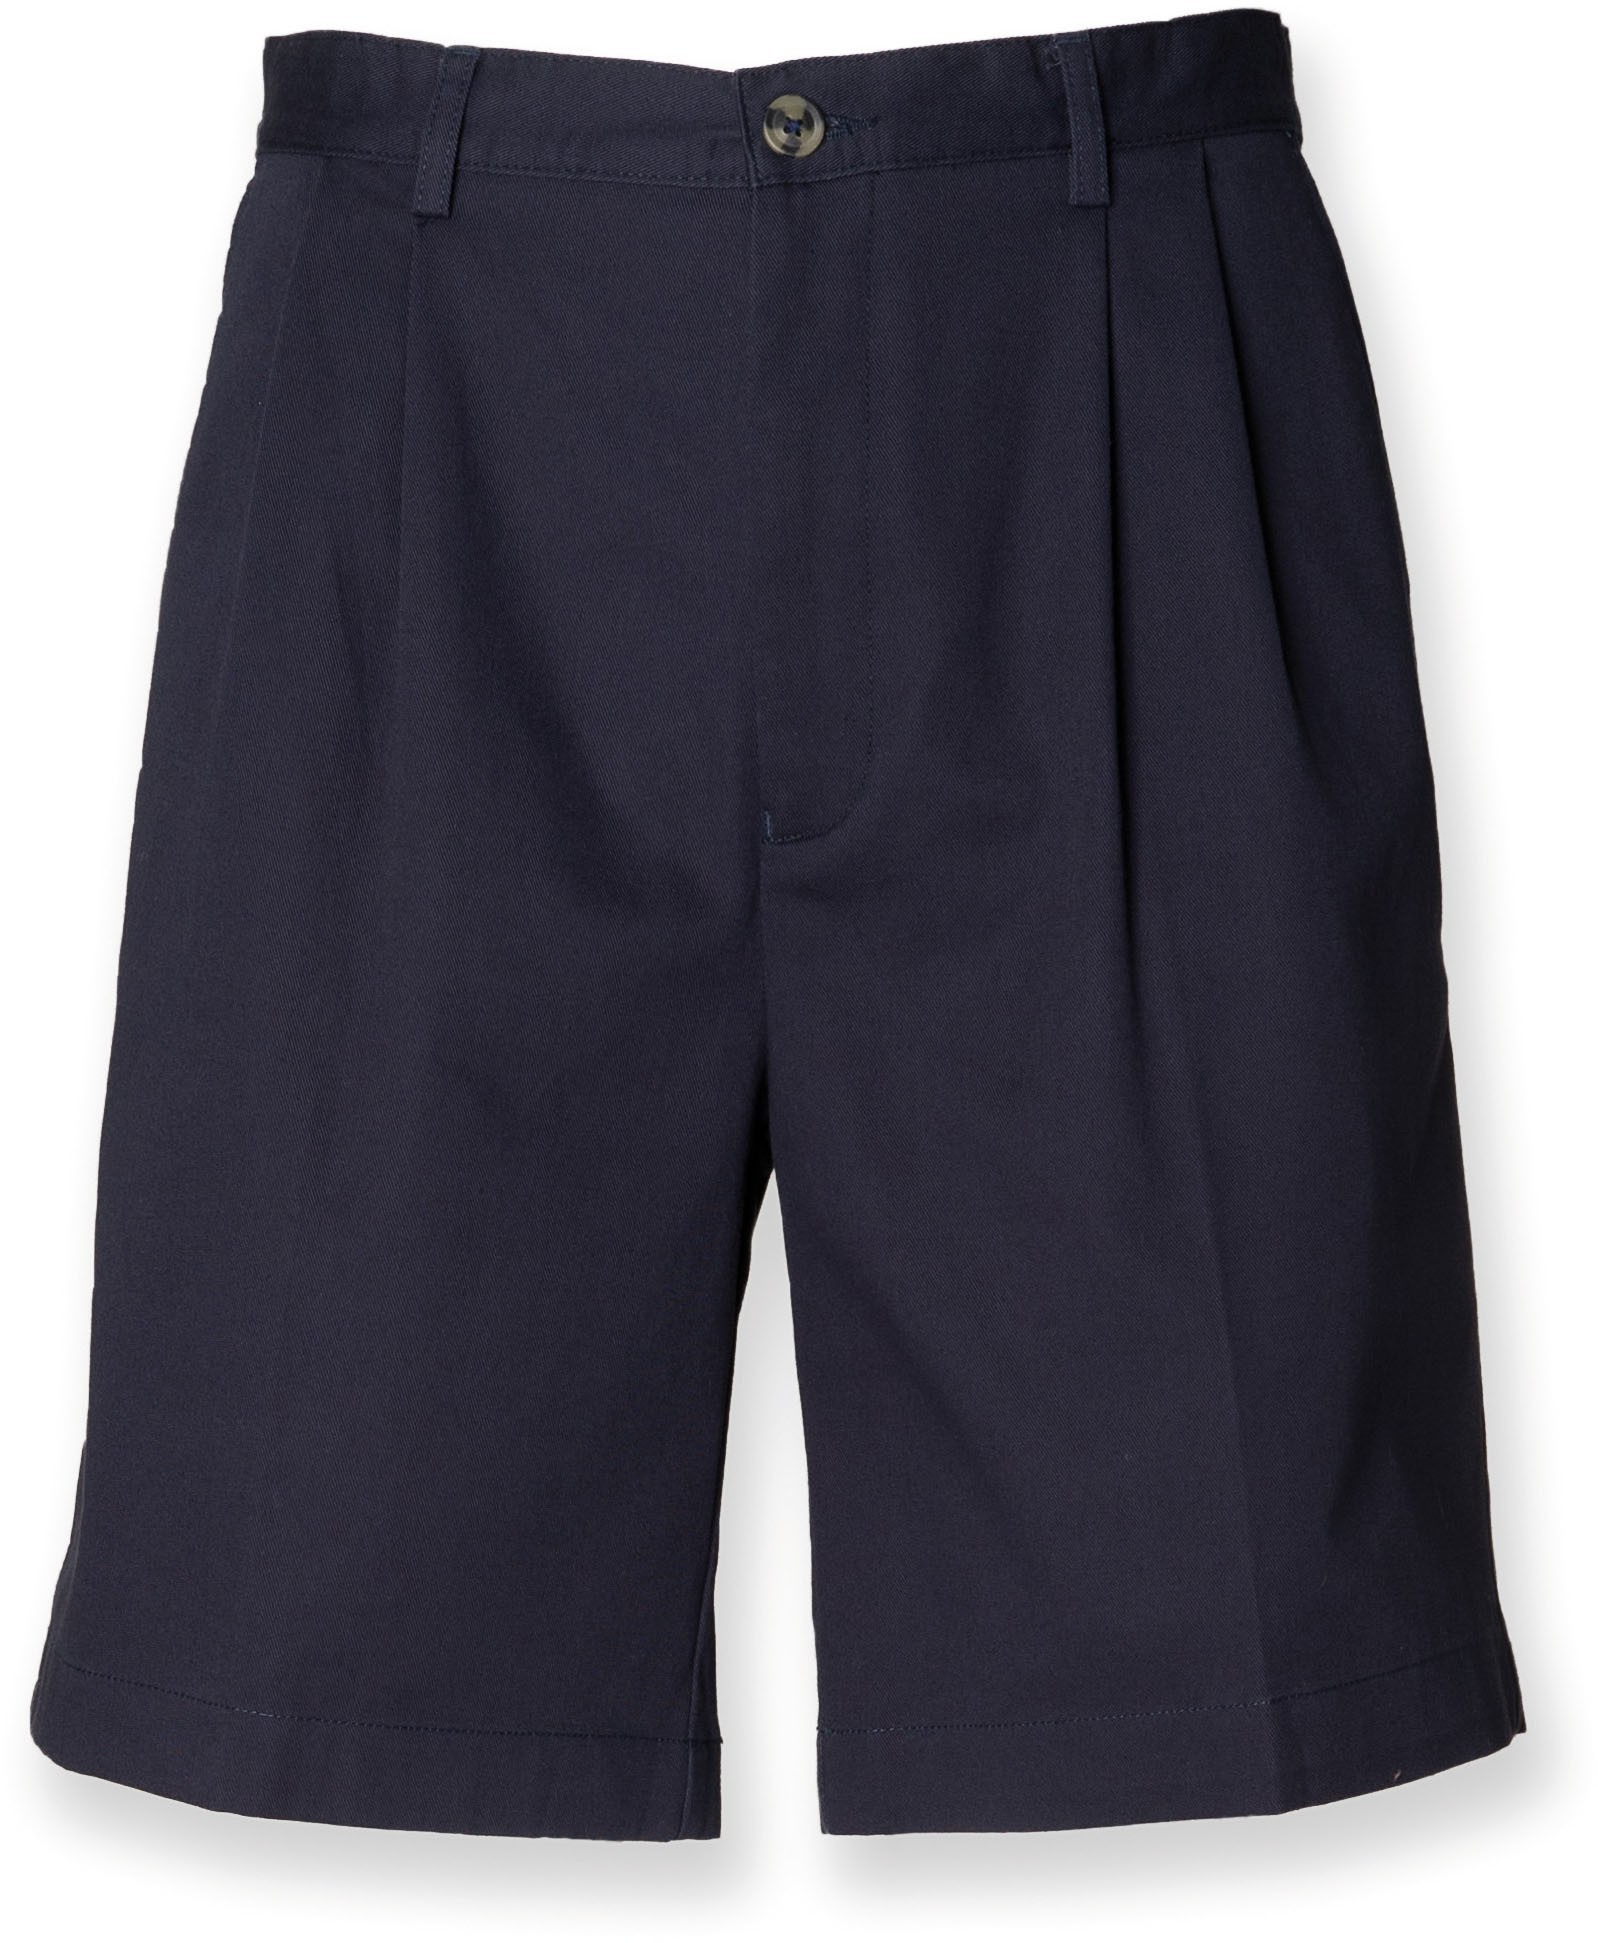 Men's Pleat Front Chino Shorts